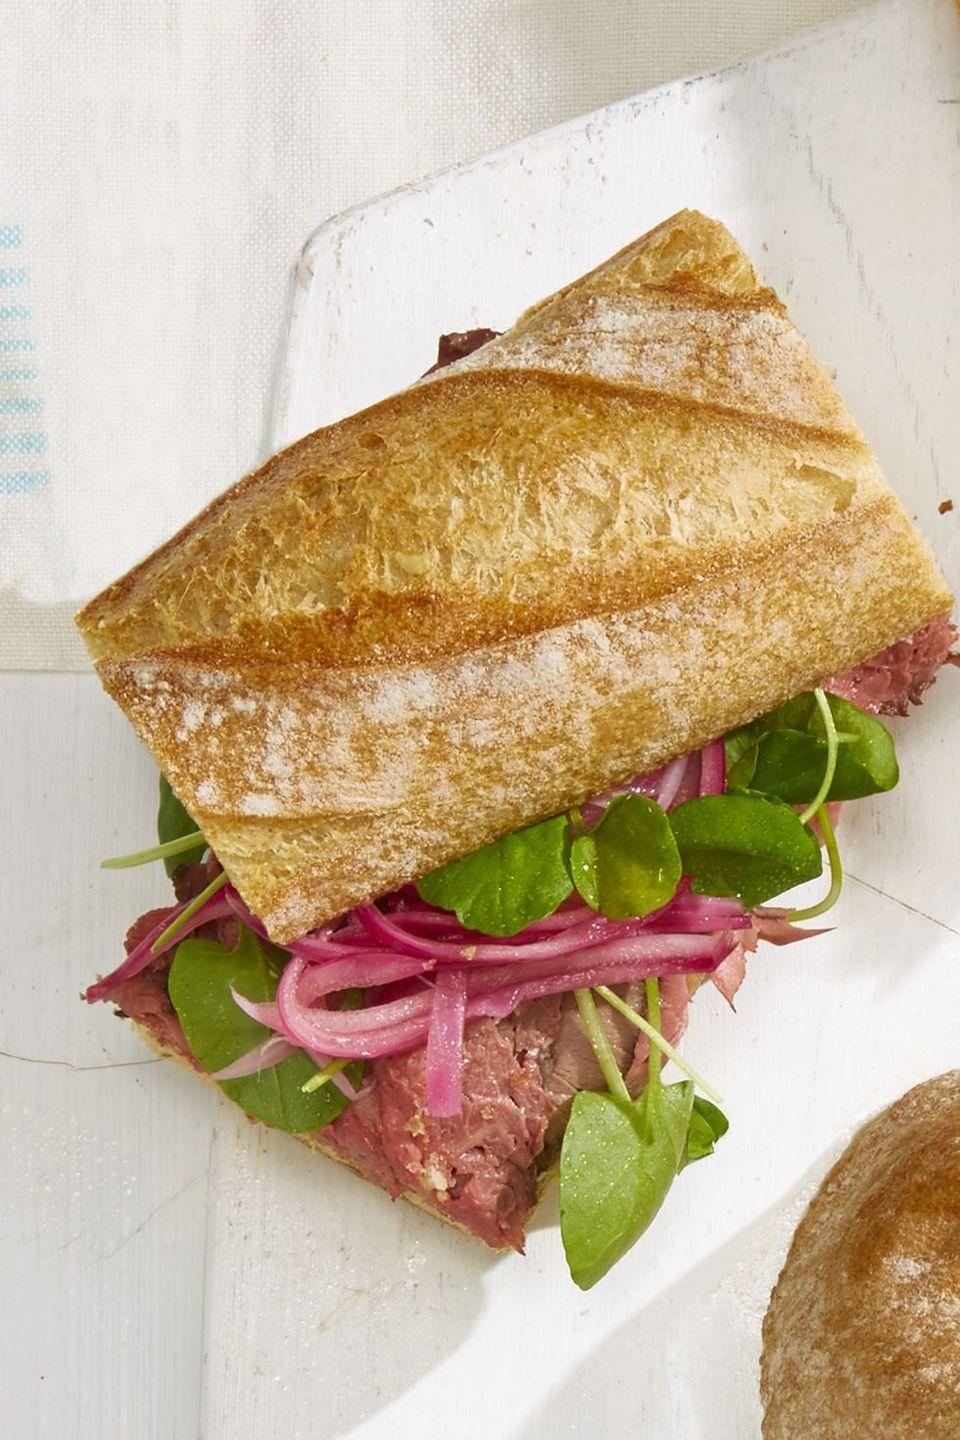 "<p>Pickled onions, prepared horseradish, and Dijon mustard lend tons of flavor to this hearty sandwich. You don't even need cheese.</p><p><em><a href=""https://www.goodhousekeeping.com/food-recipes/a21731209/roast-beef-baguette-recipe/"" rel=""nofollow noopener"" target=""_blank"" data-ylk=""slk:Get the recipe for Roast Beef Baguette »"" class=""link rapid-noclick-resp"">Get the recipe for Roast Beef Baguette »</a></em></p>"